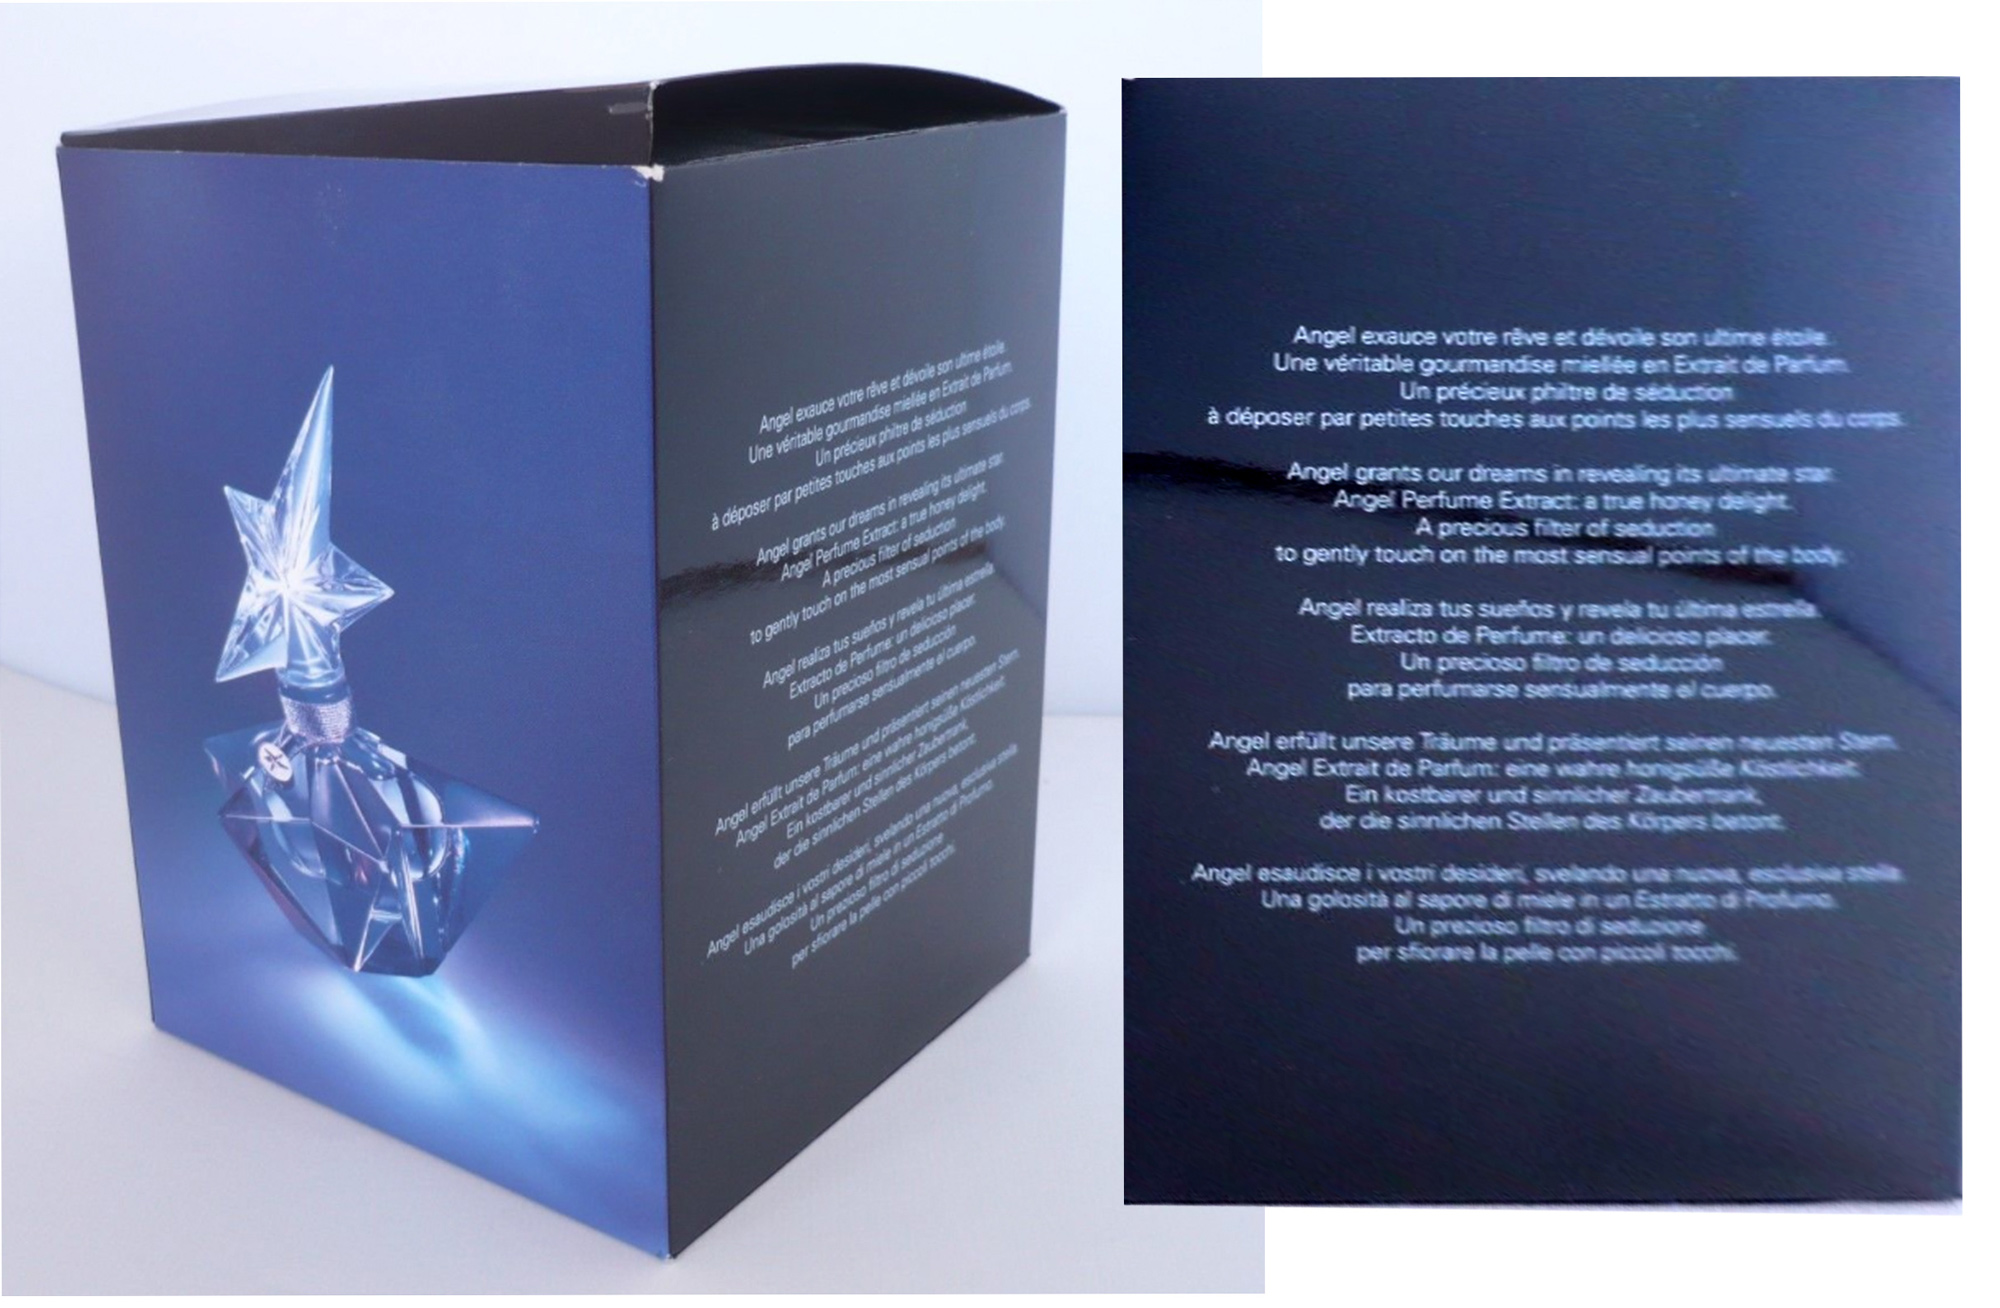 Outer Box Packaging Text Thierry Mugler Angel Perfume Caprice de Star Ultimate Star (Etoile), 2007.